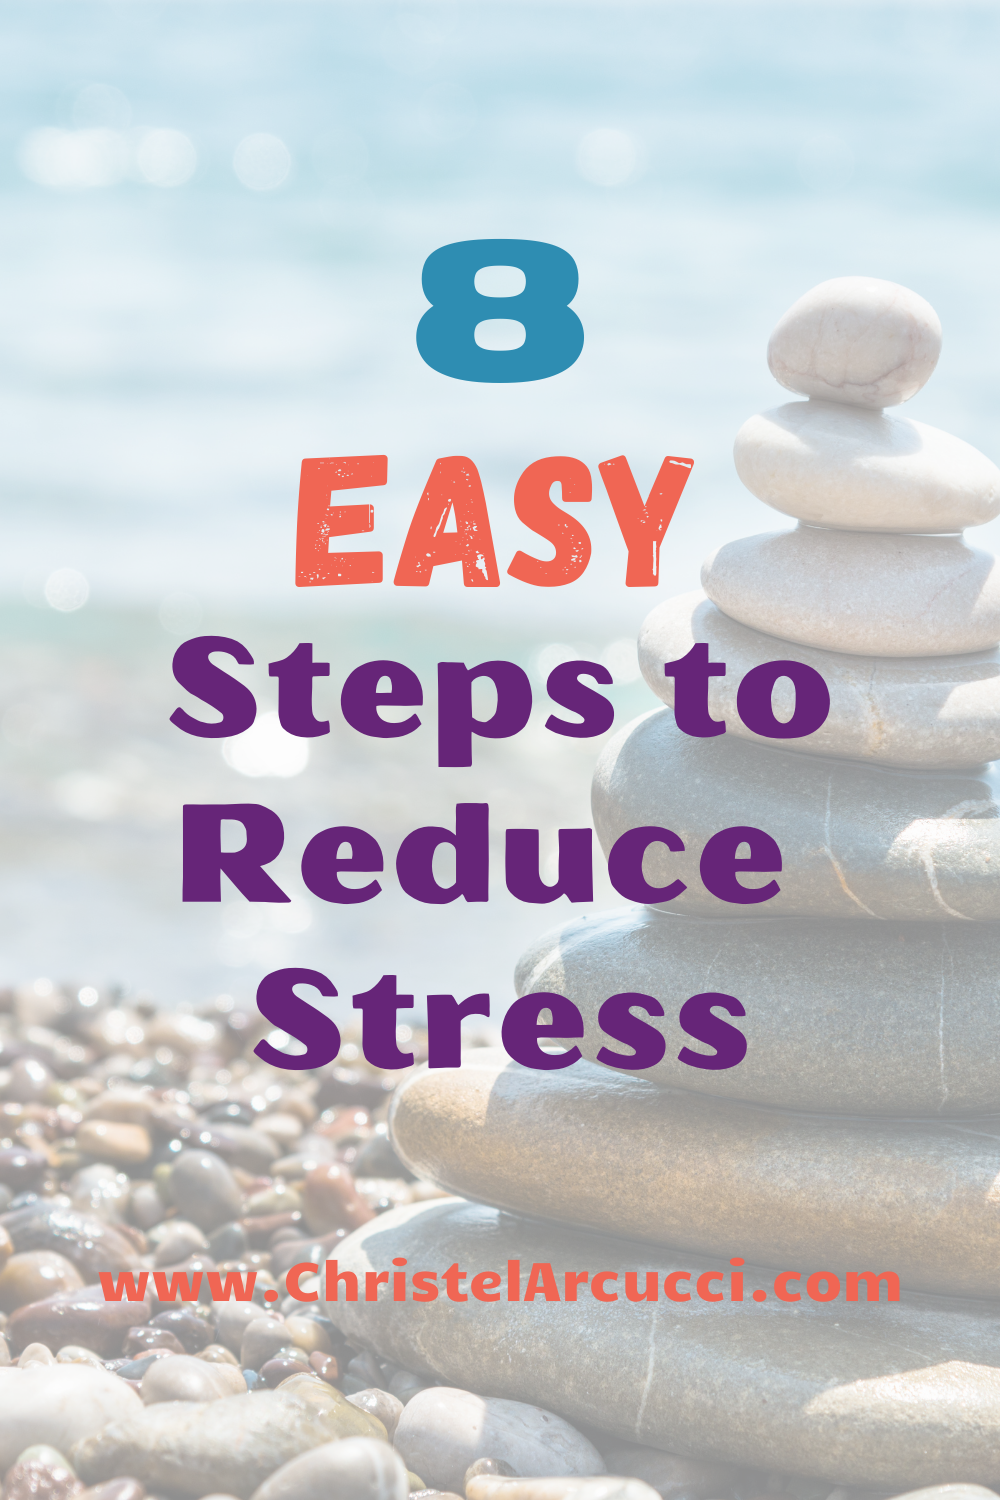 Mindfulness Practice to Reduce Stress